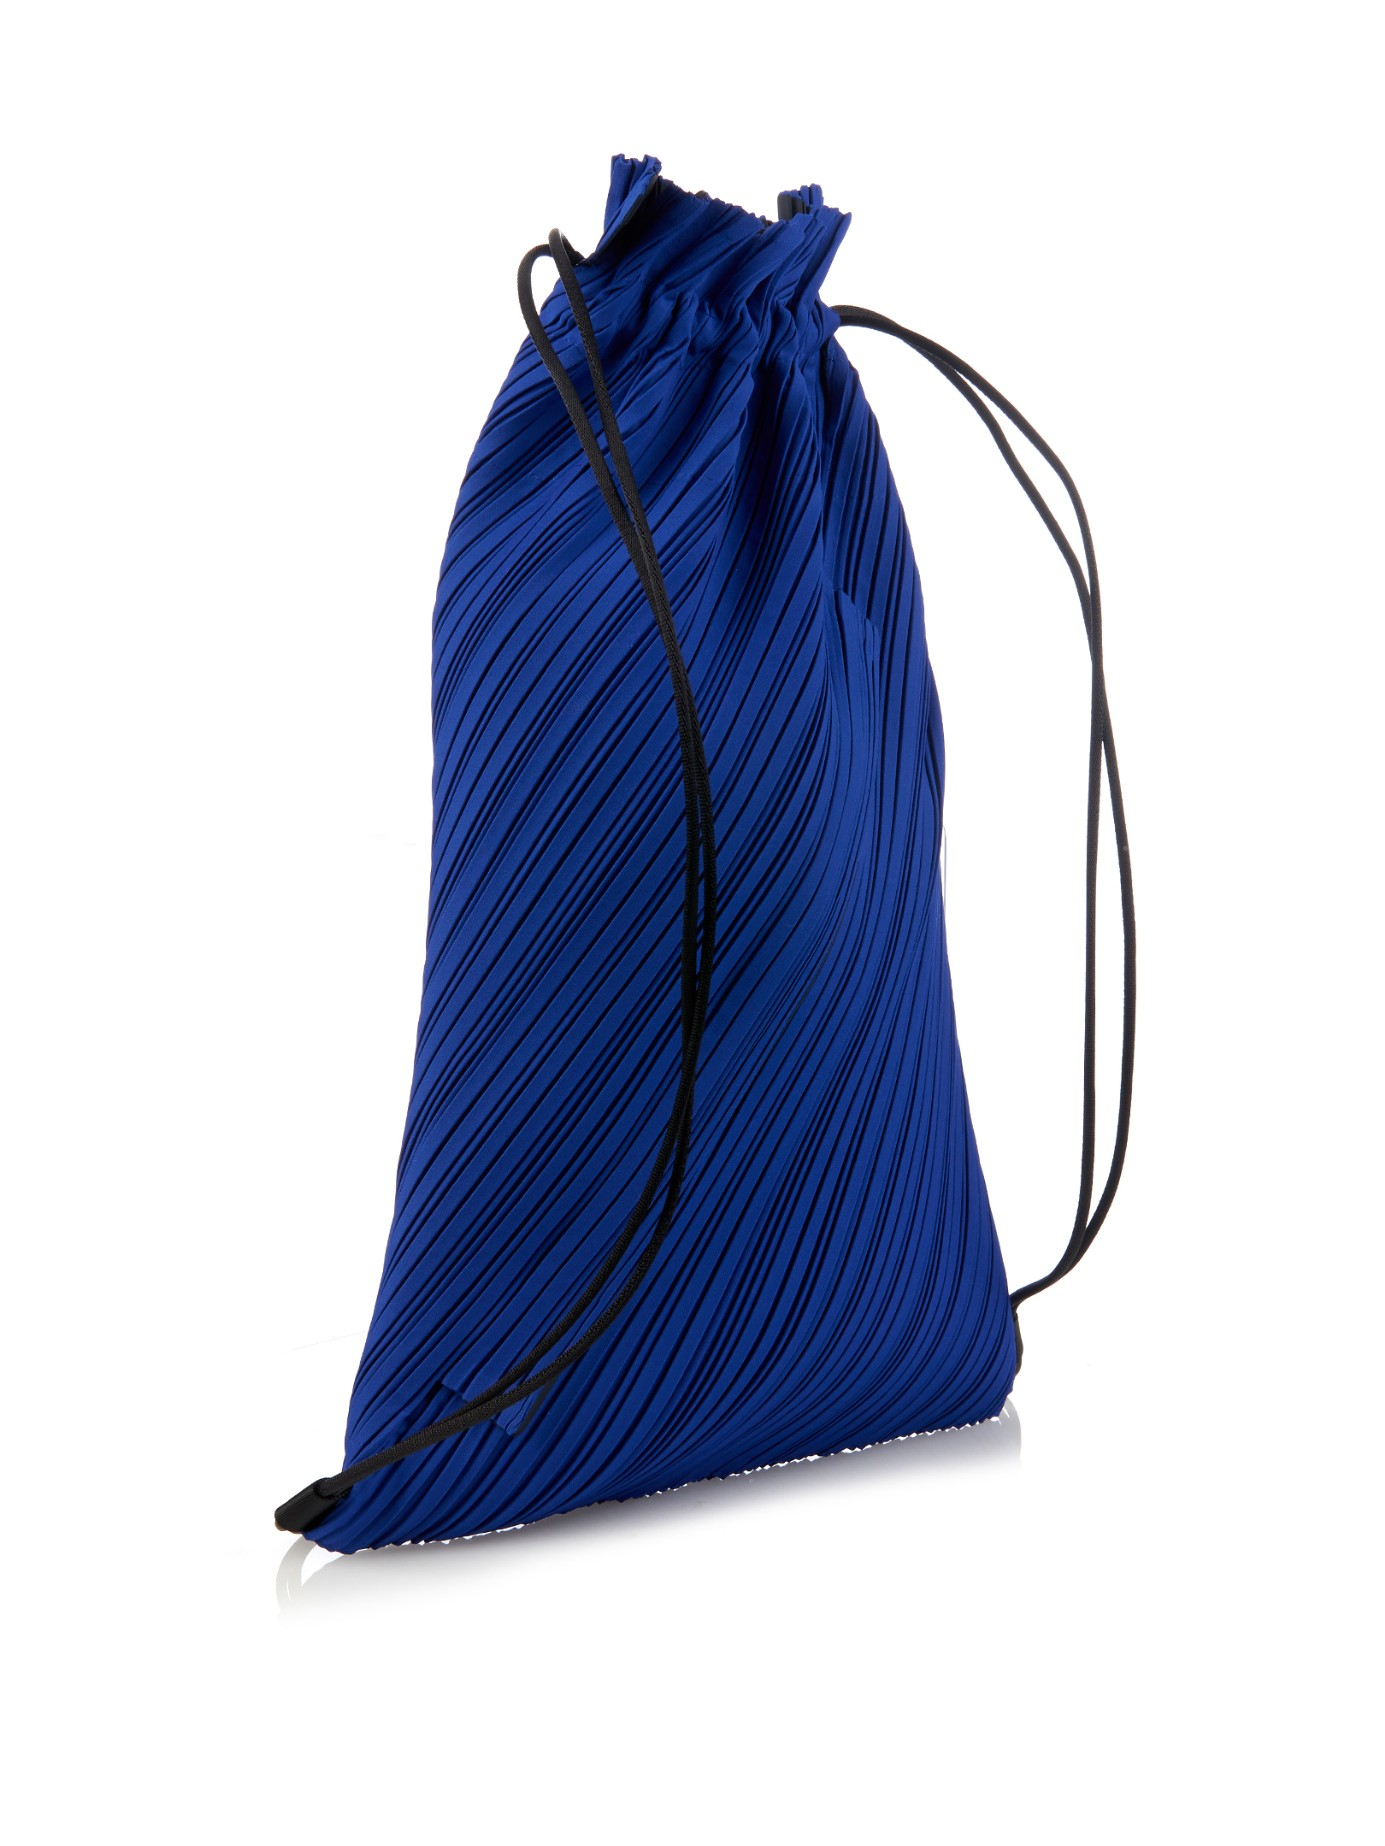 Lyst - Pleats Please Issey Miyake Pleated Drawstring Backpack in Blue 986e220caecb5